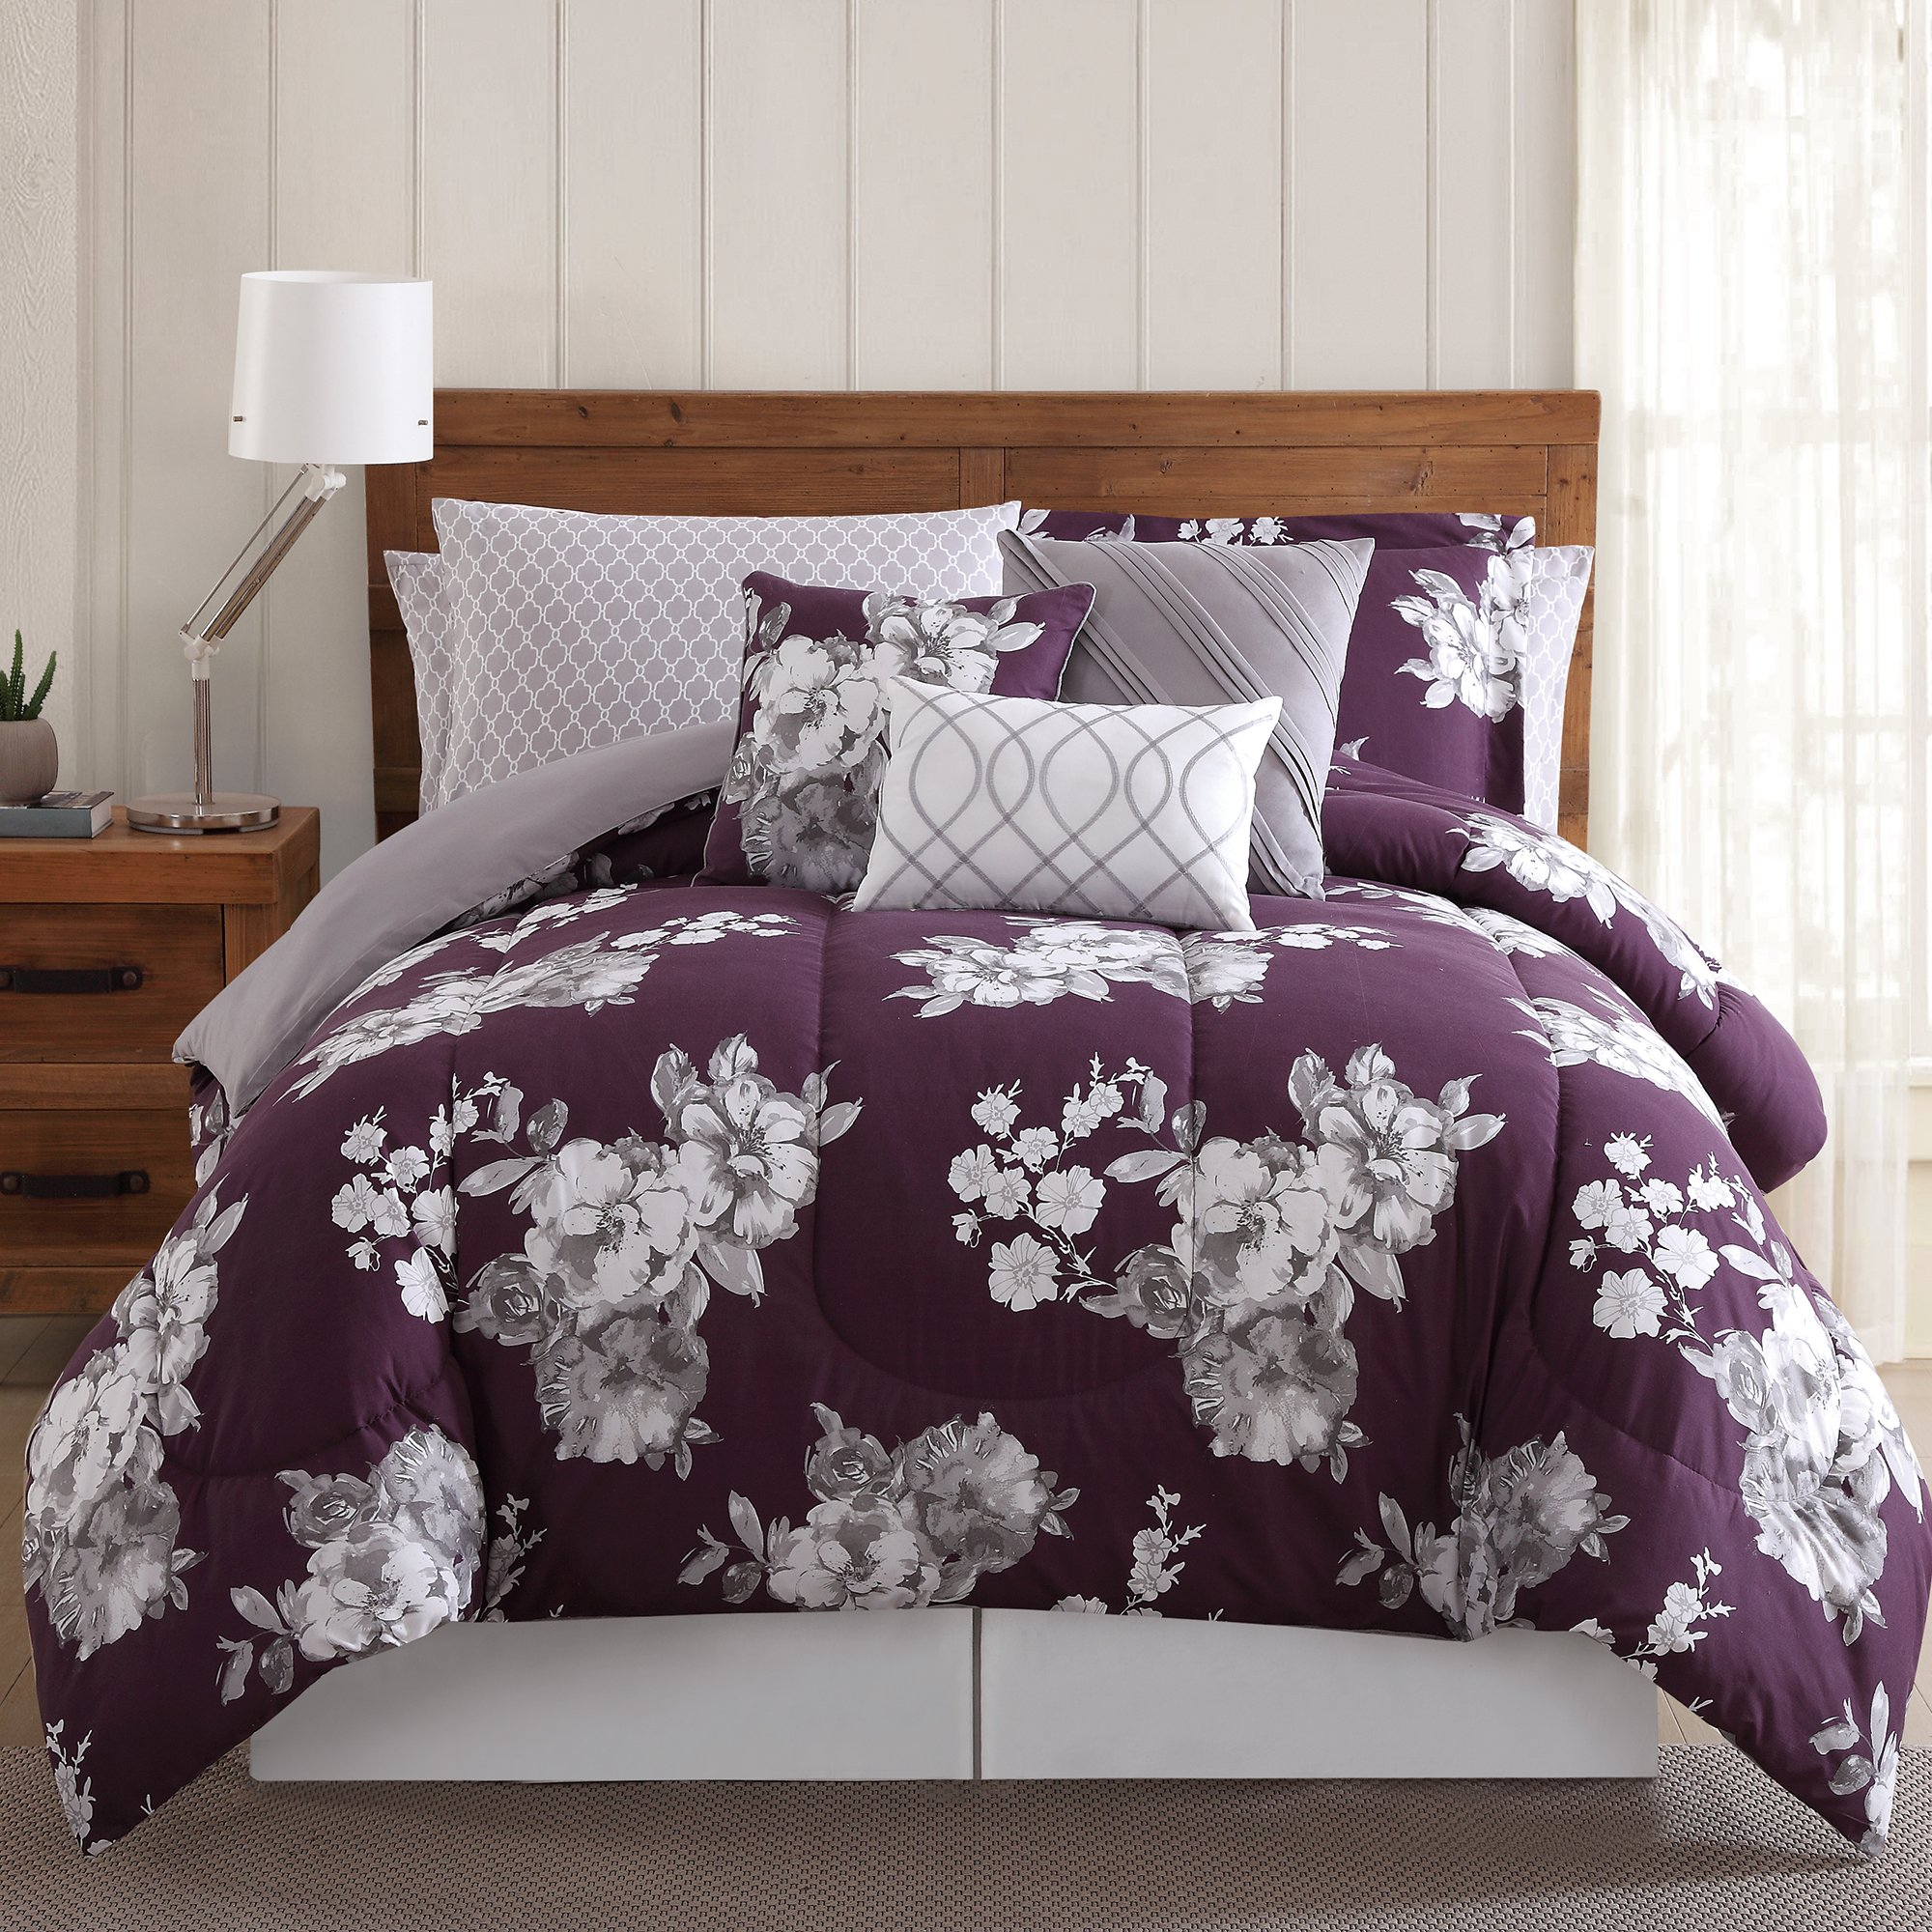 Style 212 12 Pieve Peony Bed Ensemble, King 10 Piece Set, Garden Floral Peony